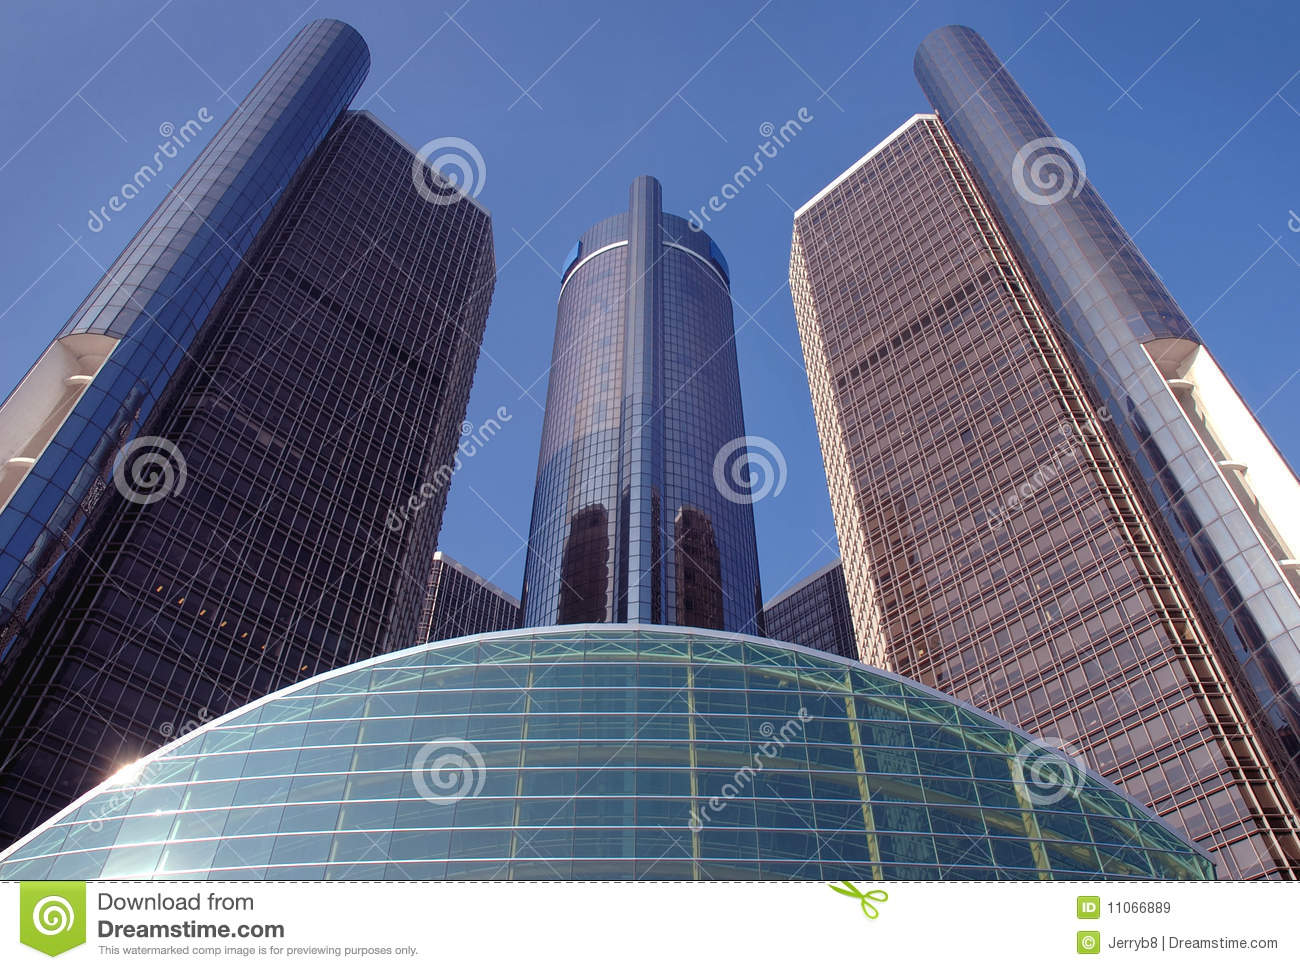 Gm headquarters building stock image image of glass for General motors corporate office